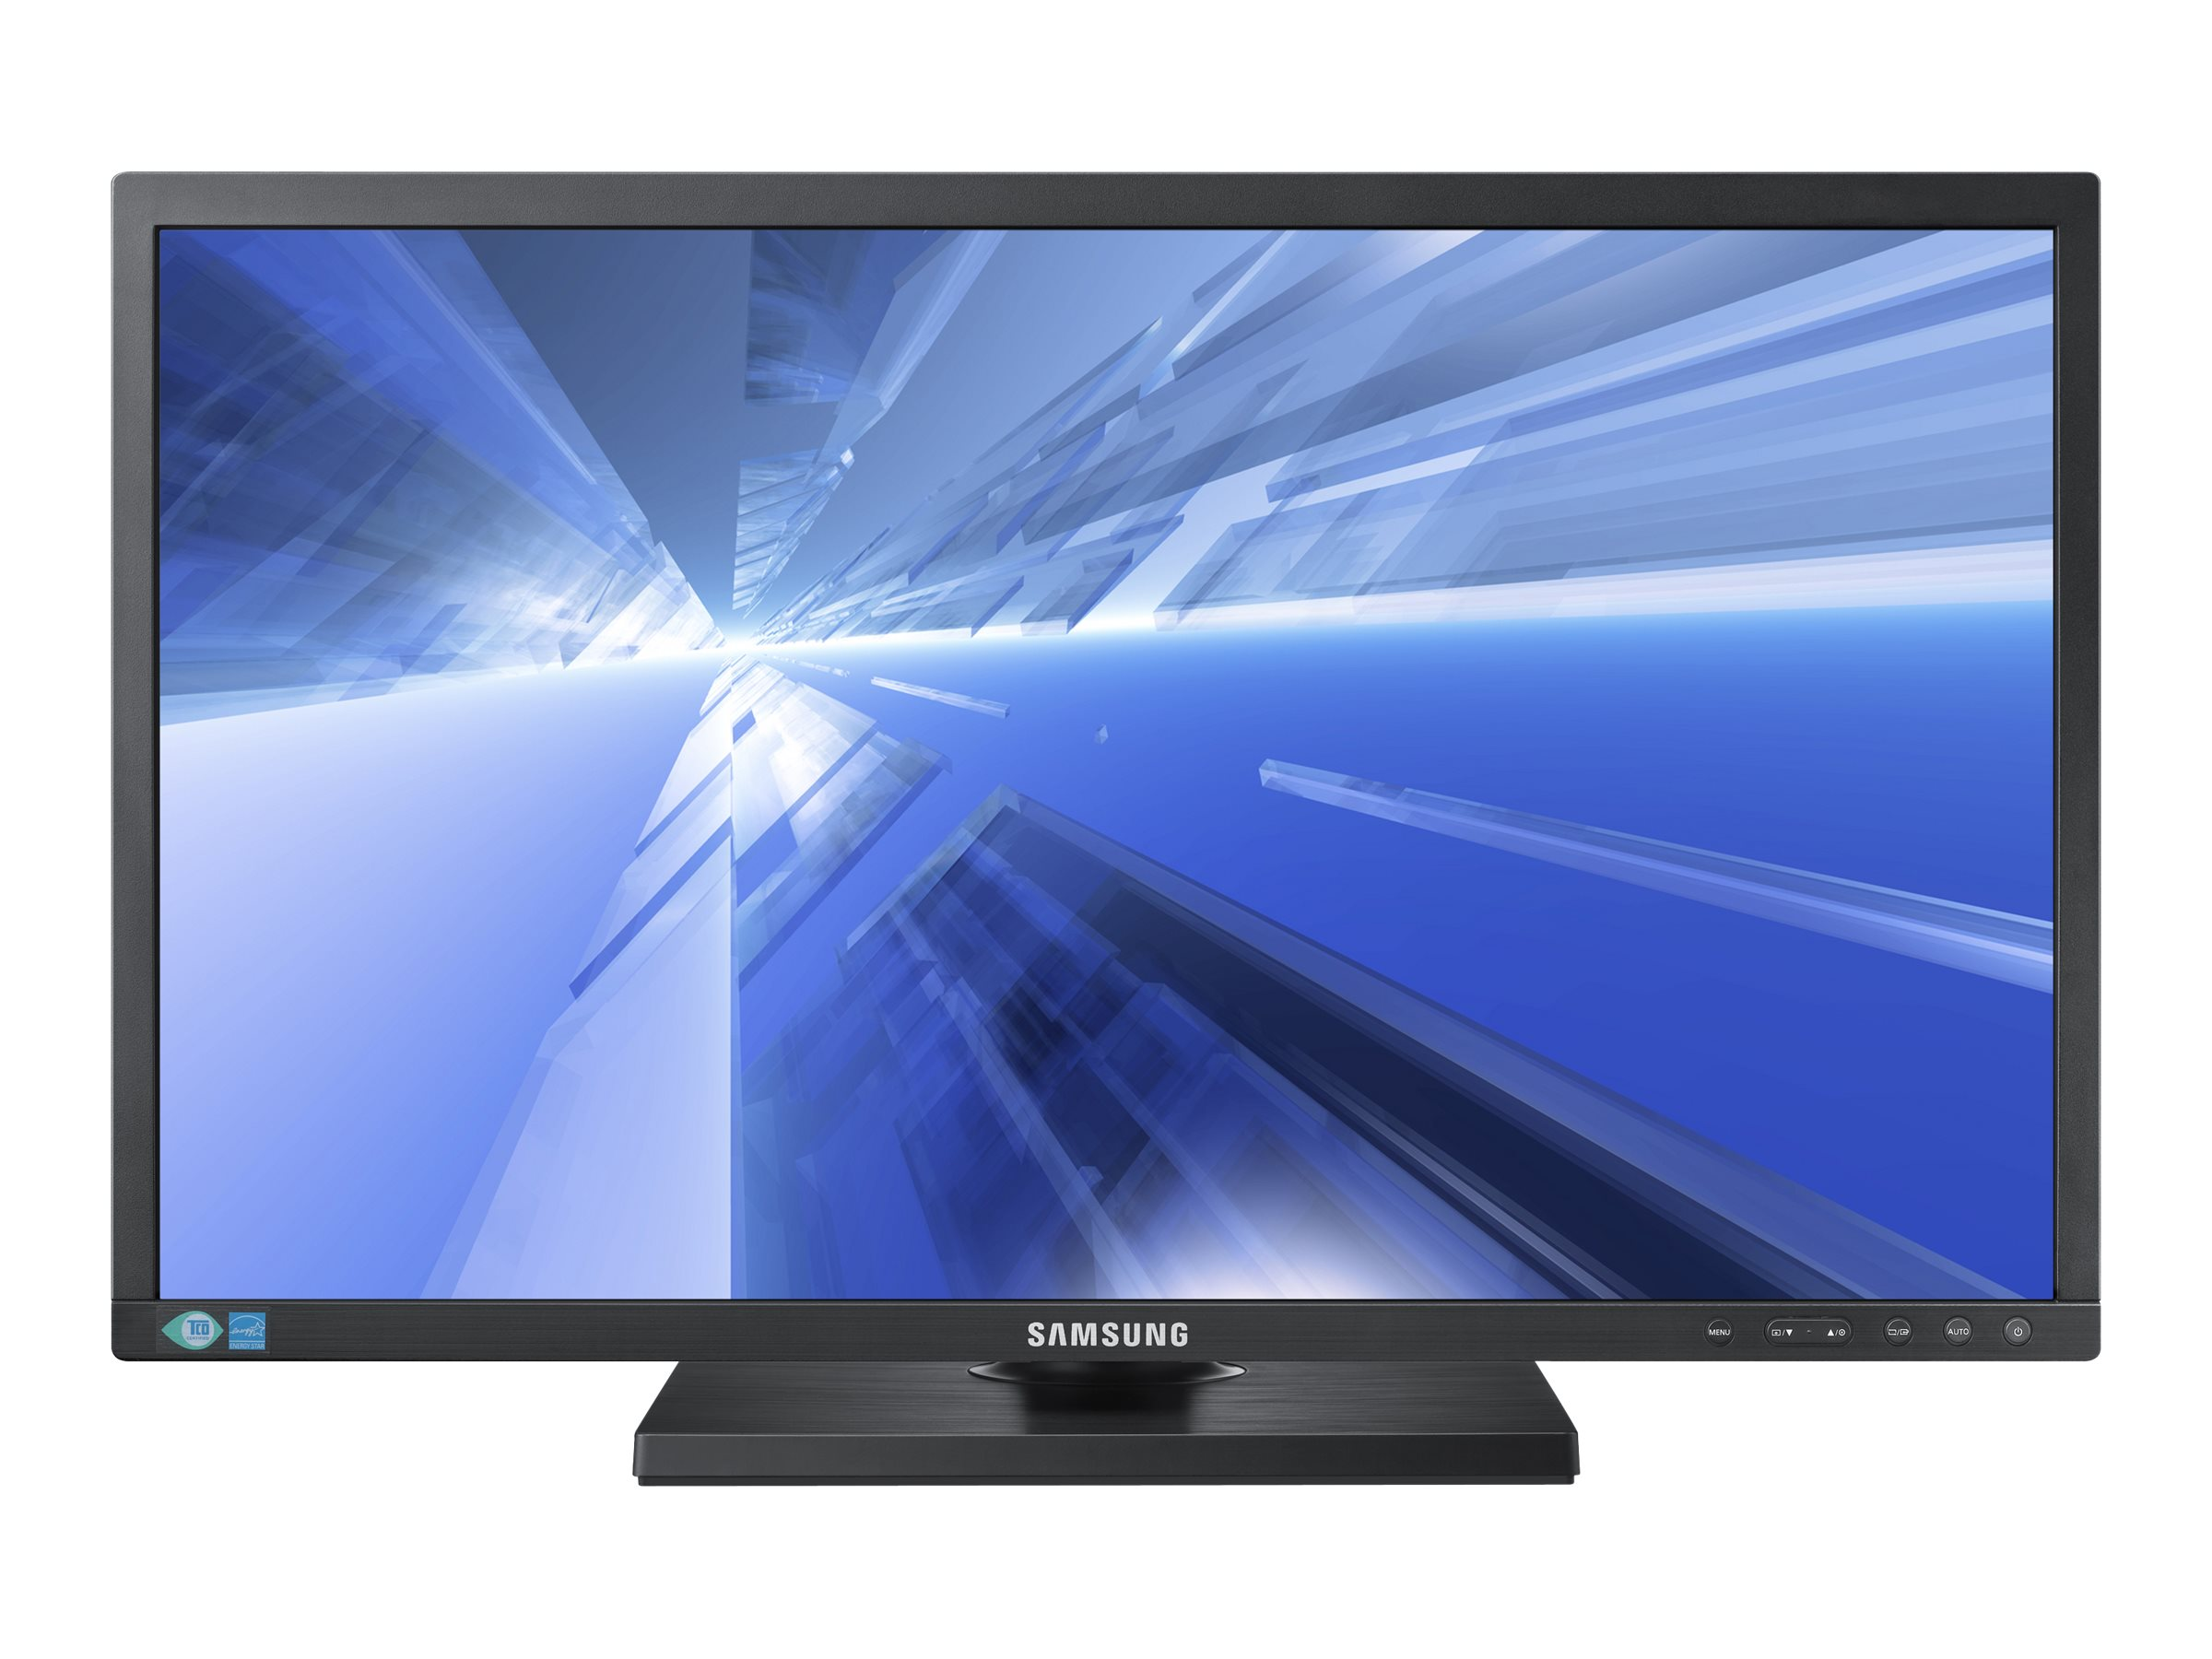 Samsung 27 SE650 Series Full HD LED-LCD Monitor, Black